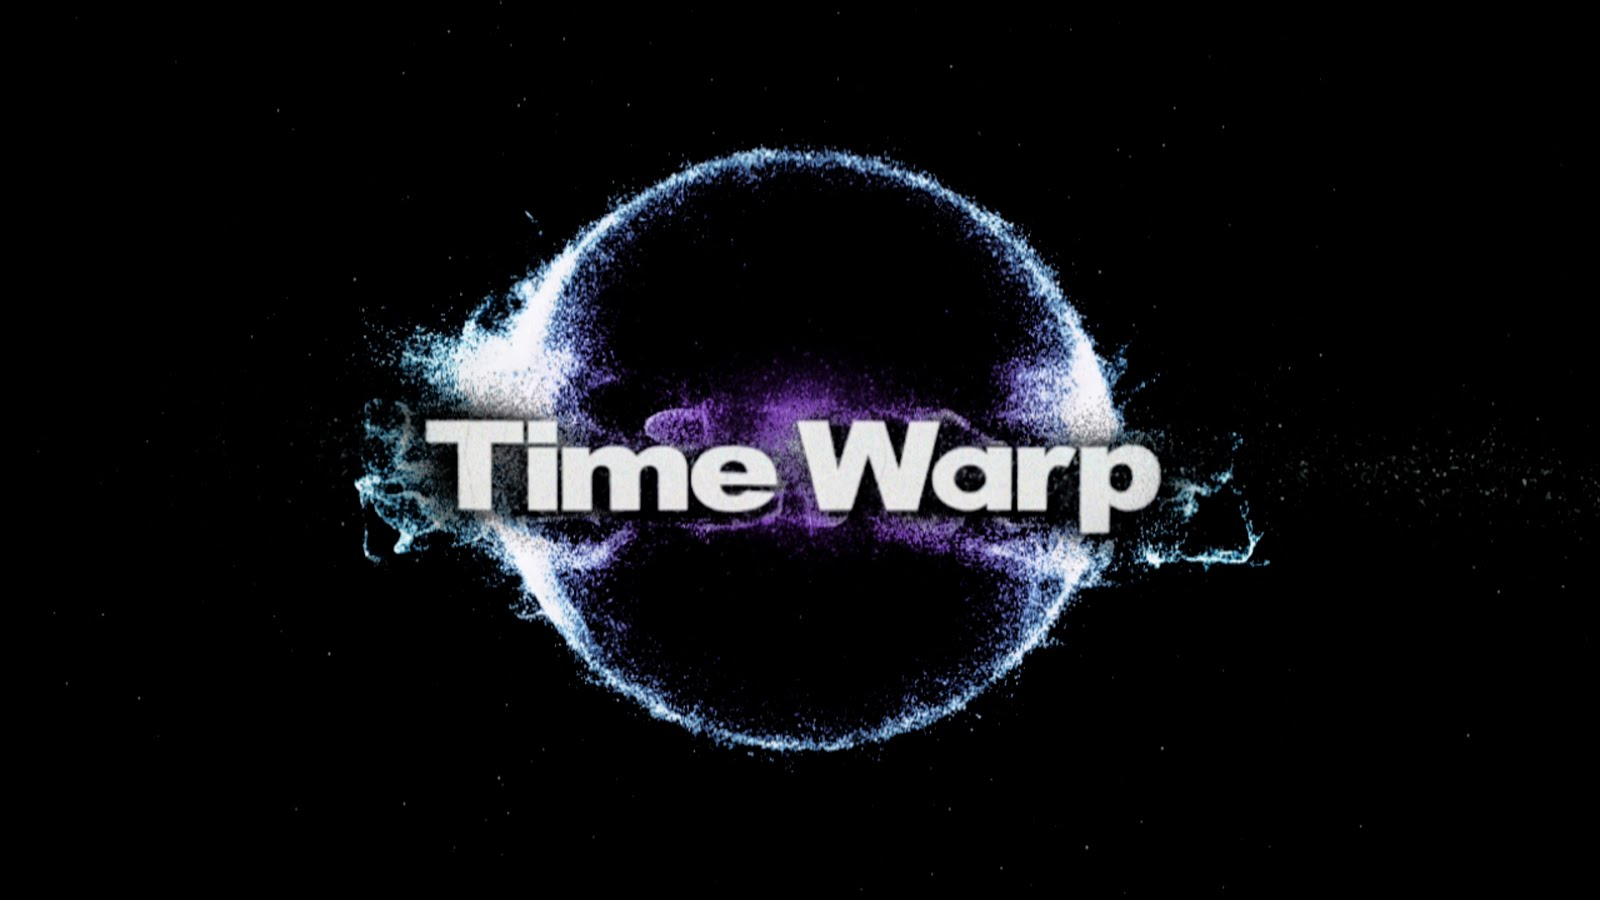 Time Warp (song)